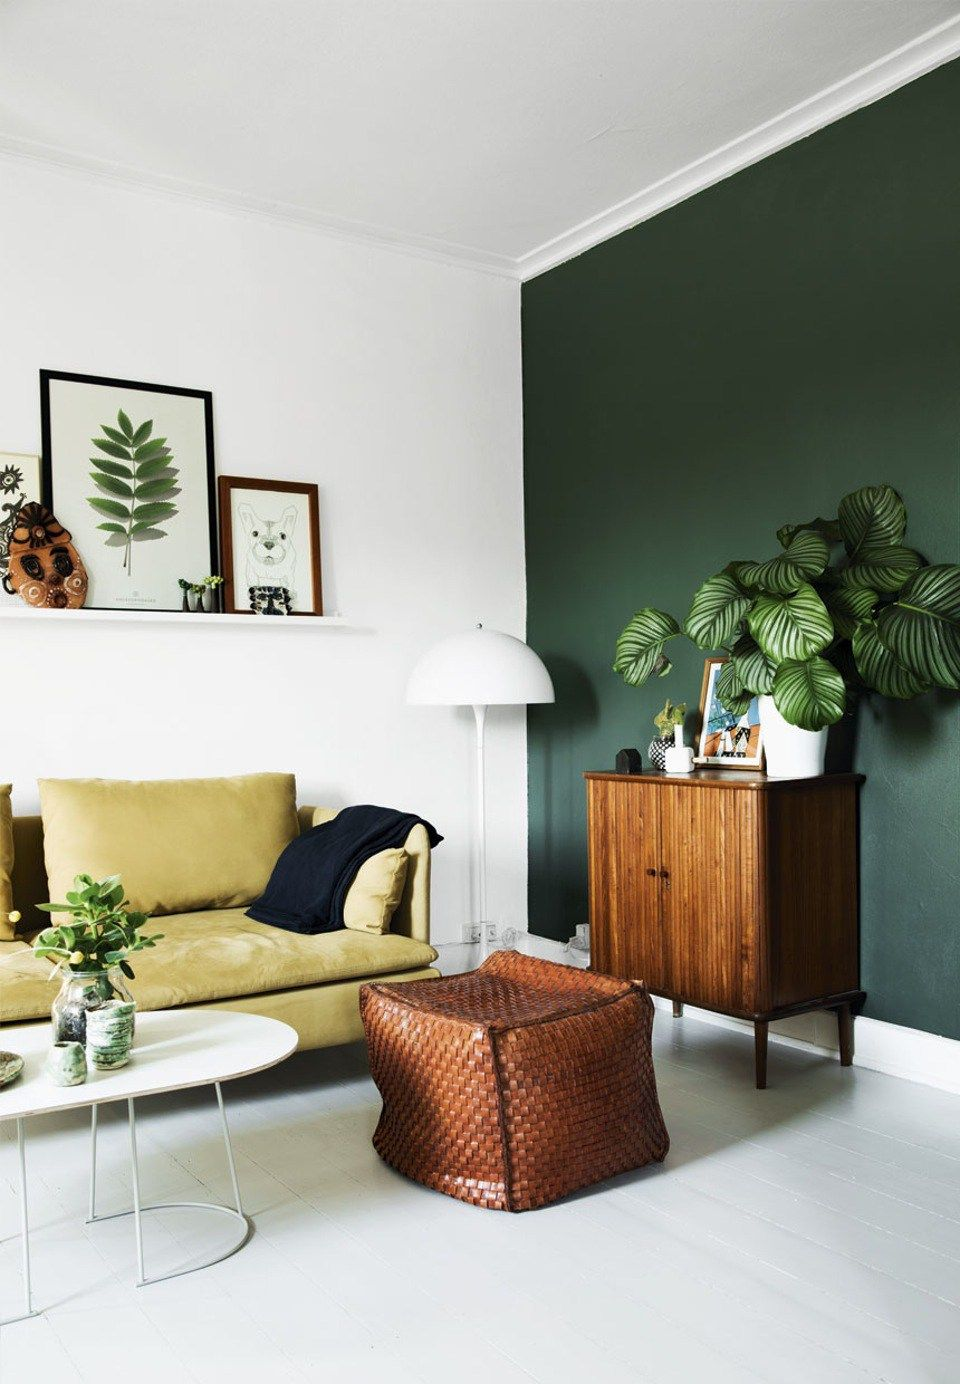 15 Ideas For Decorating With Hunter Green Living Room Green Retro Home Decor Retro Home